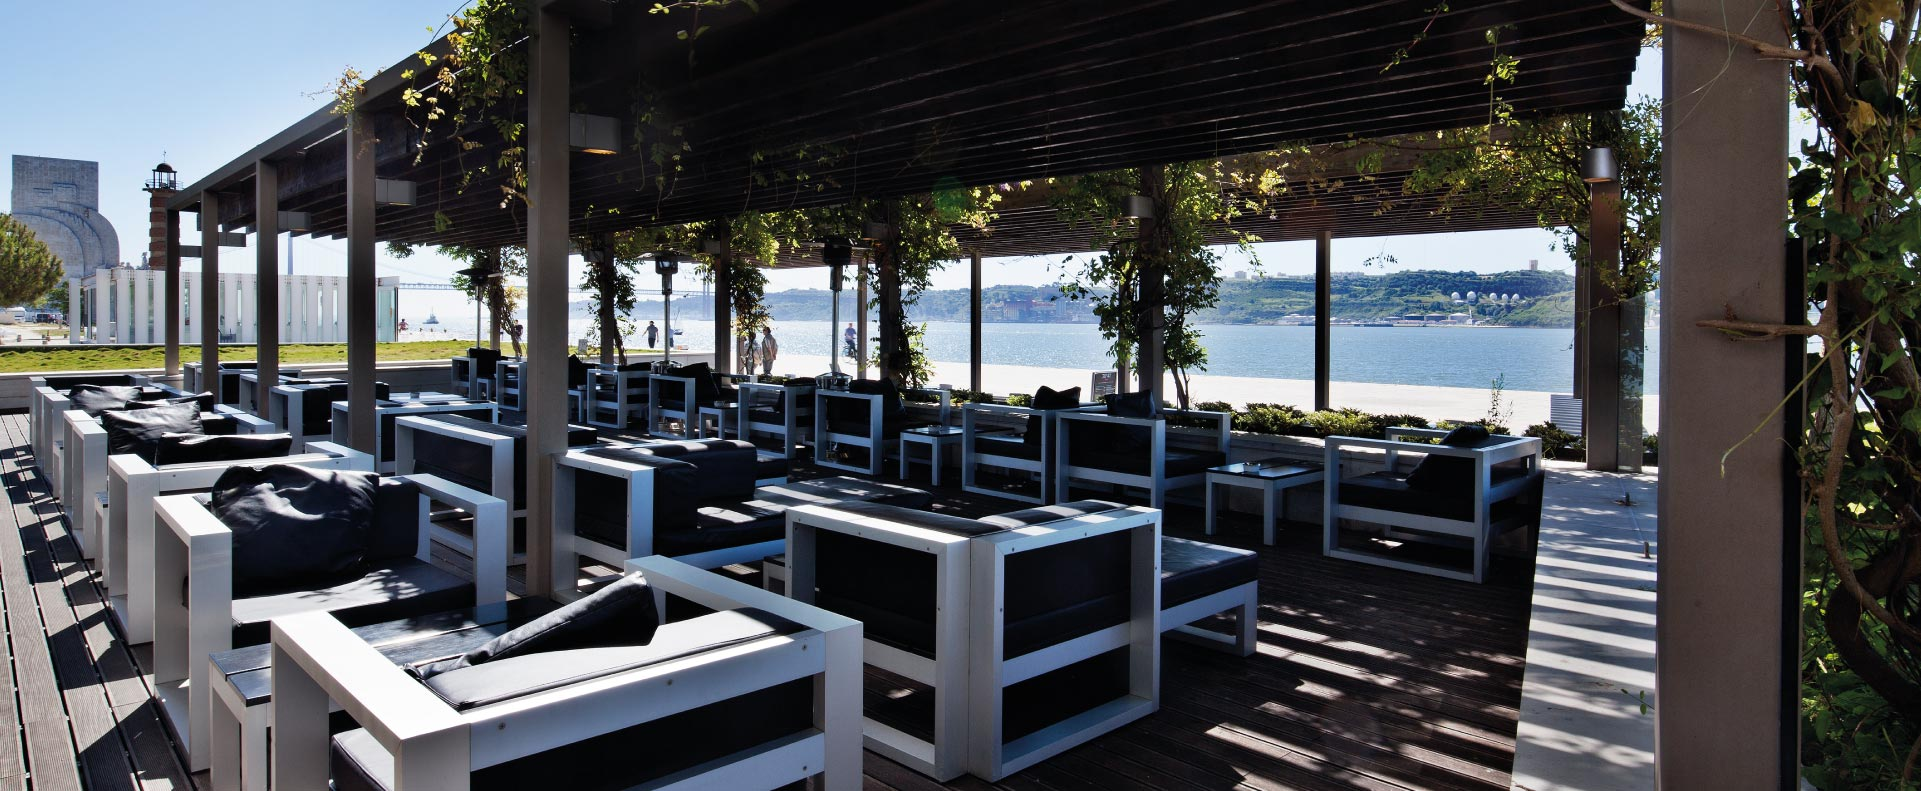 3841-bar-overlooking-tagus-river